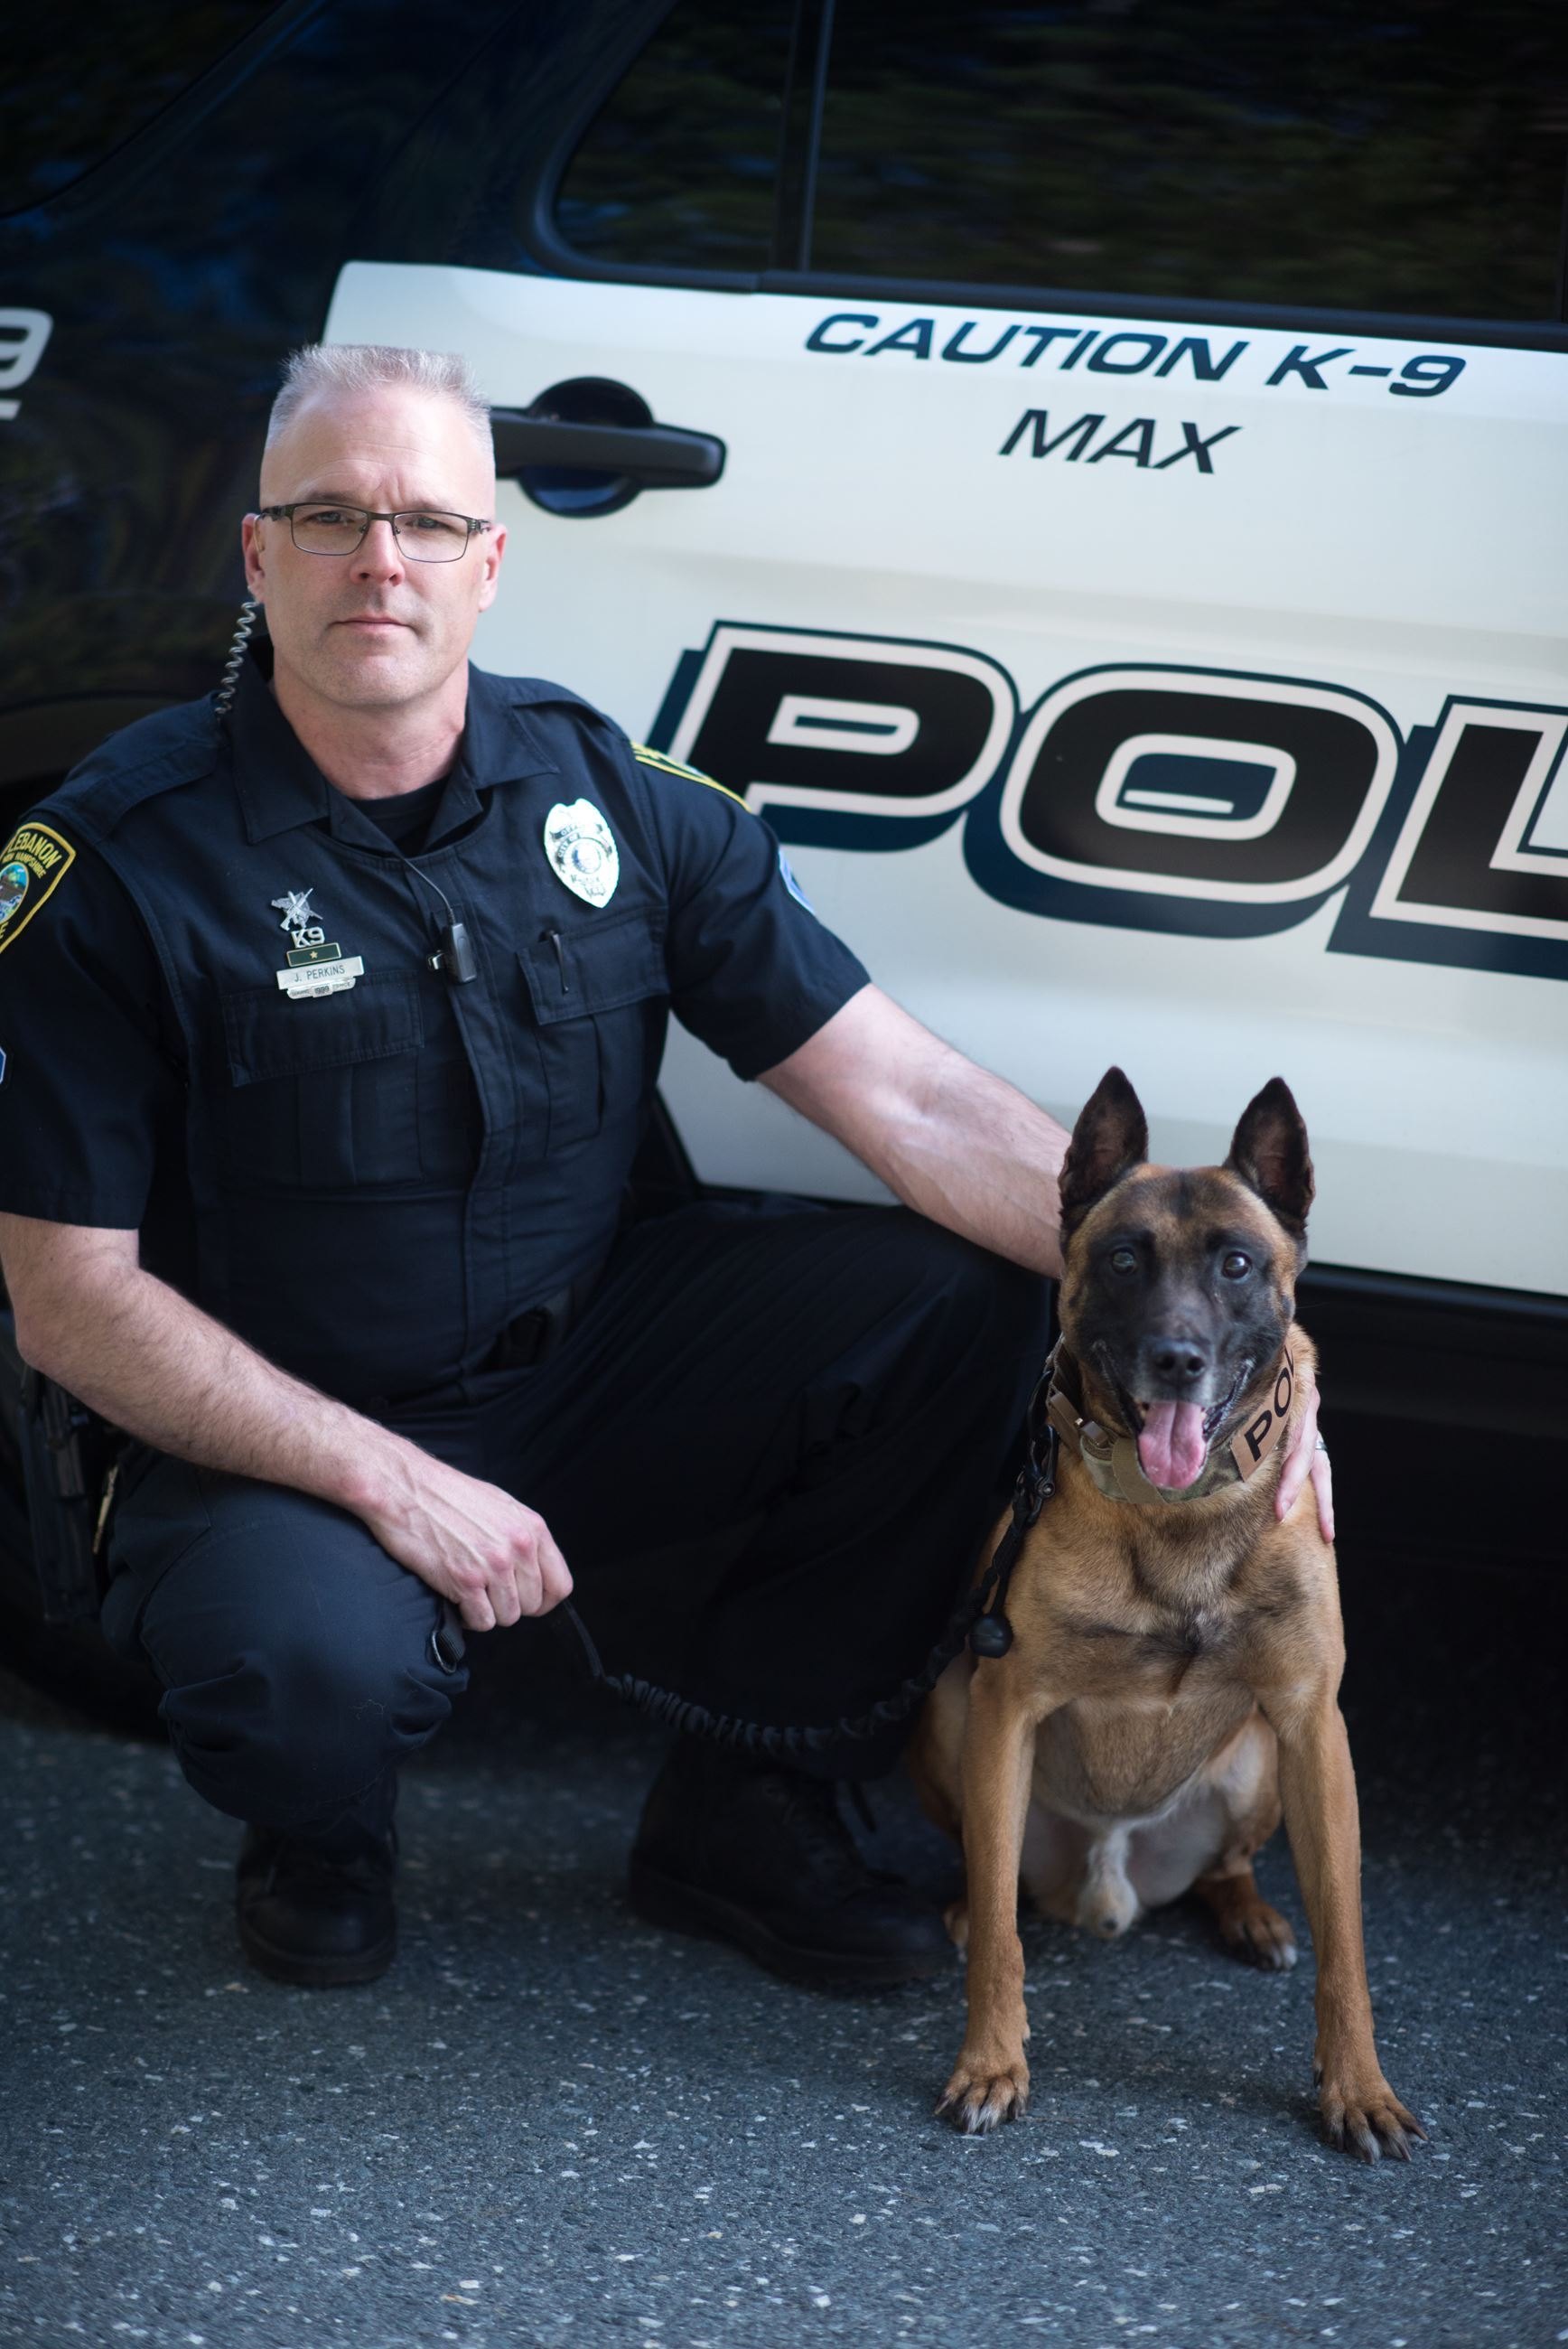 Officer Perkins and K9 Max